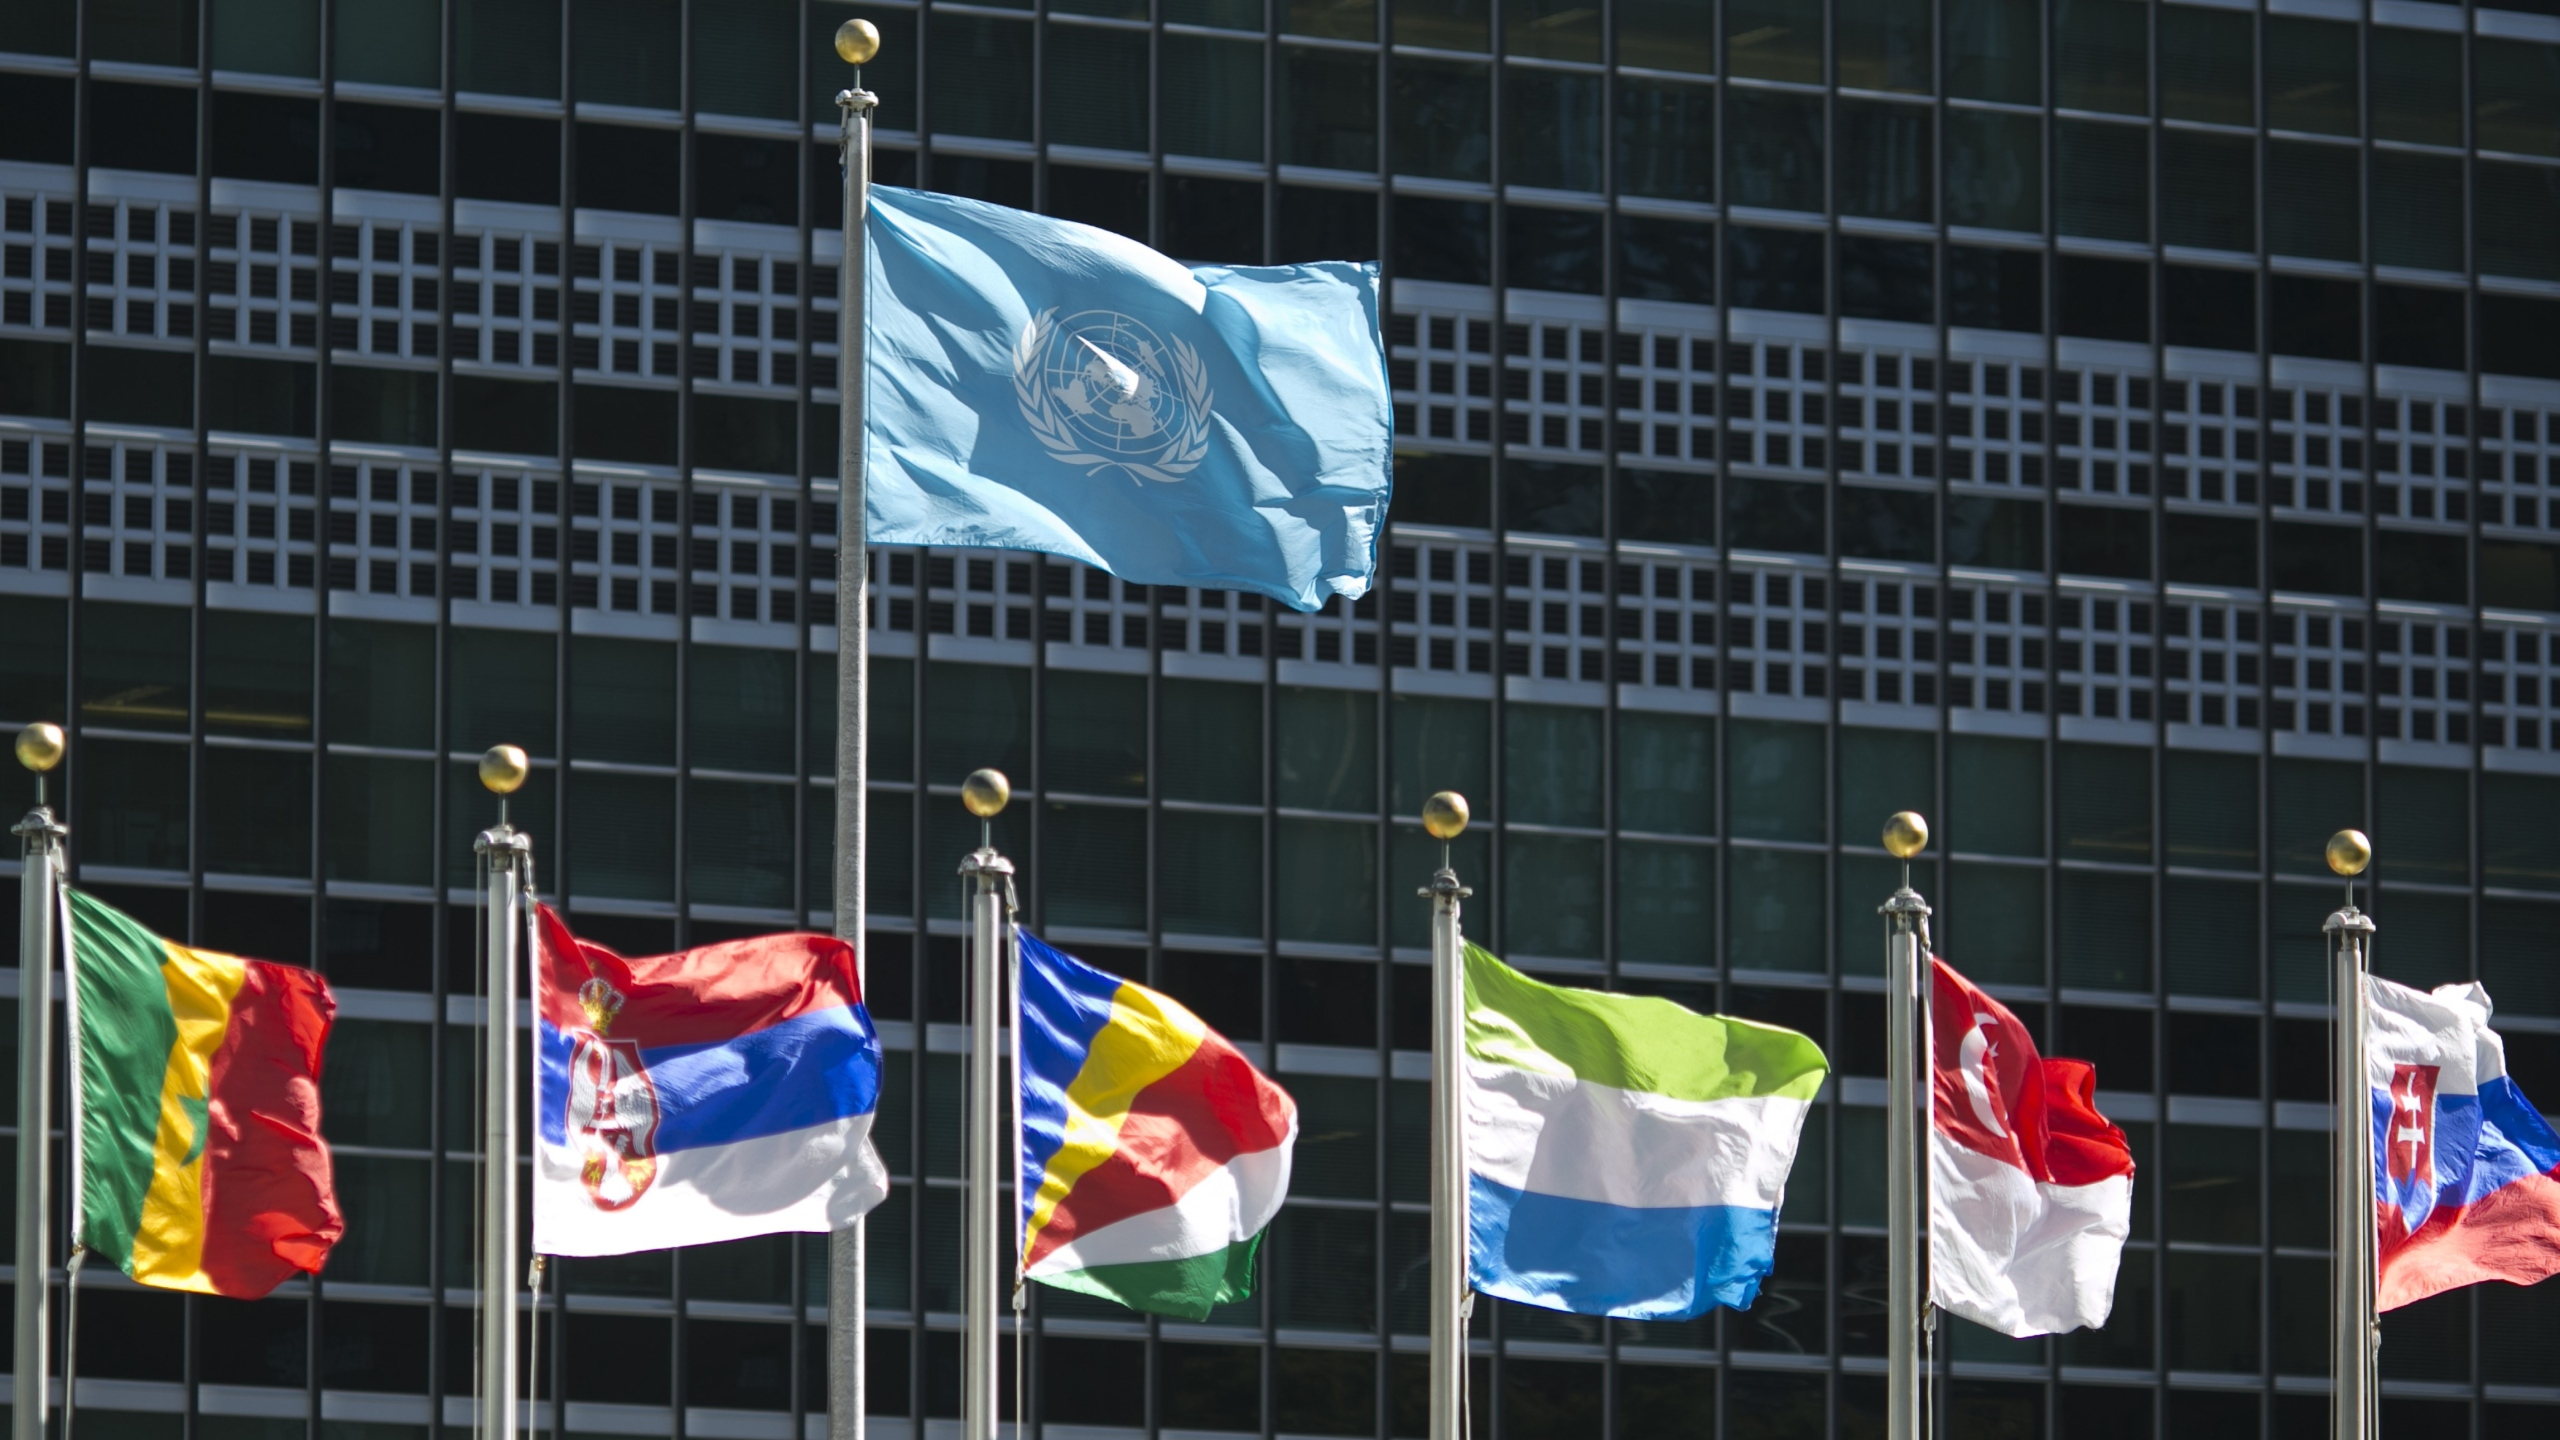 International flags fly in front of the United Nations headquarters on September 24, 2015, before the start of the 70th General Assembly meeting. (Credit: Dominick Reuter/AFP/Getty Images)